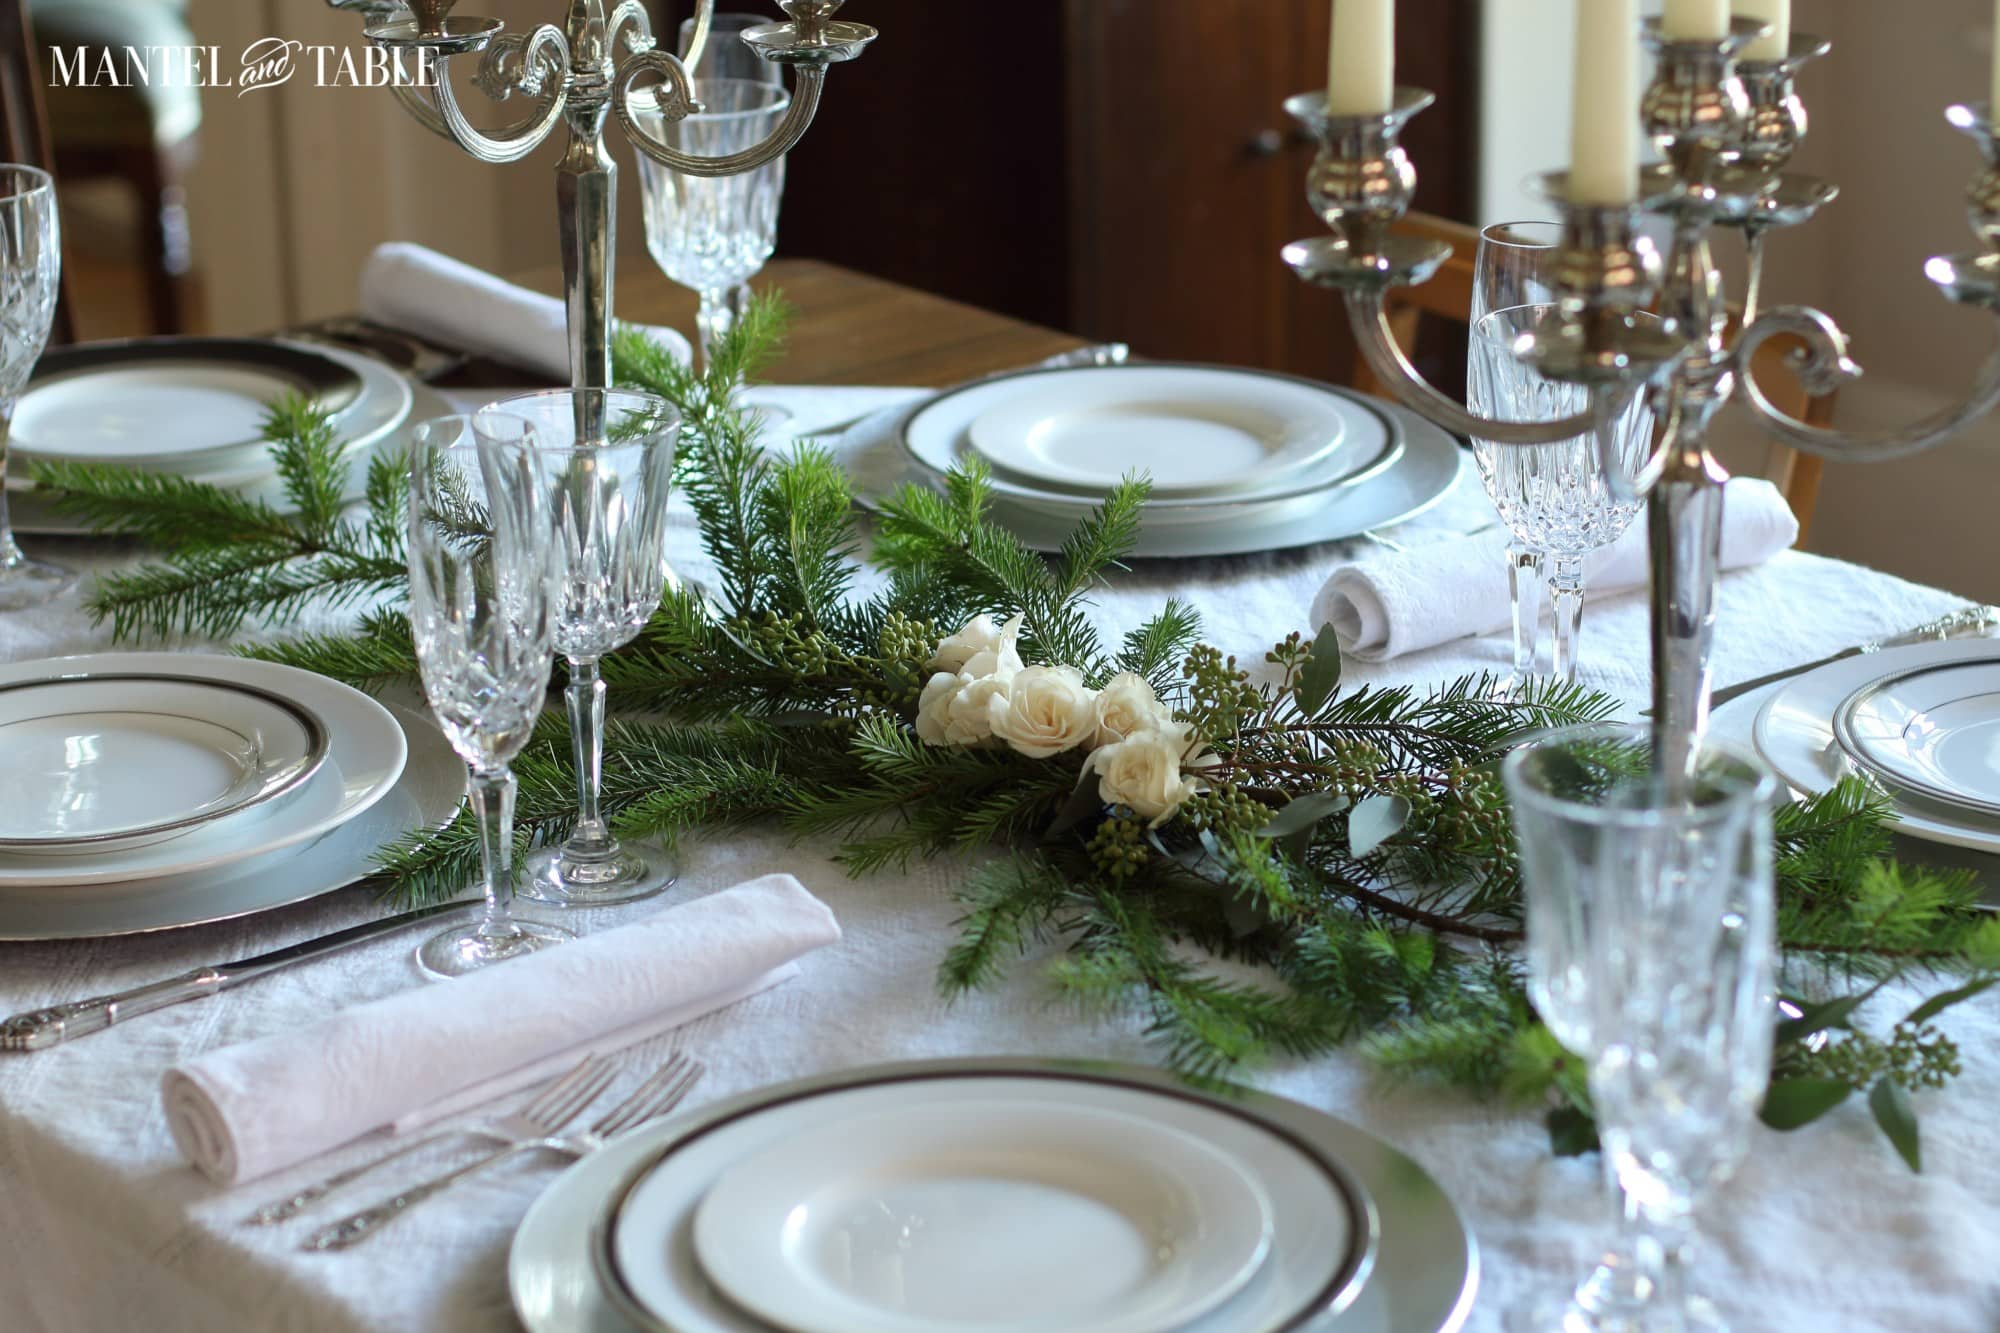 roses and evergreen centerpiece with simple white place settings and crystal